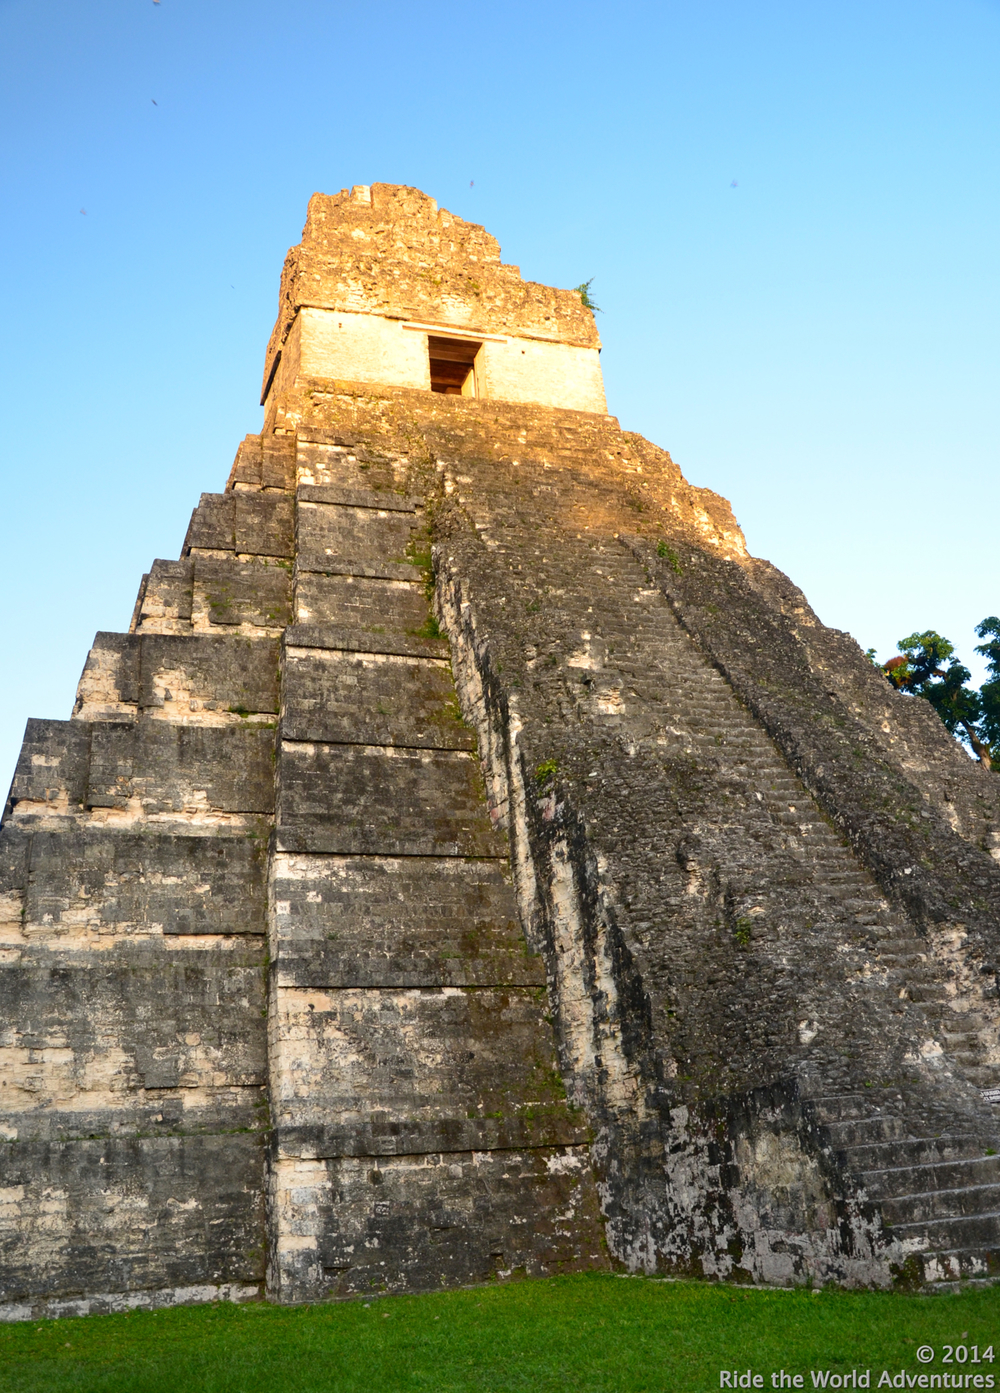 The Great Jaguar Temple rises 156 feet high